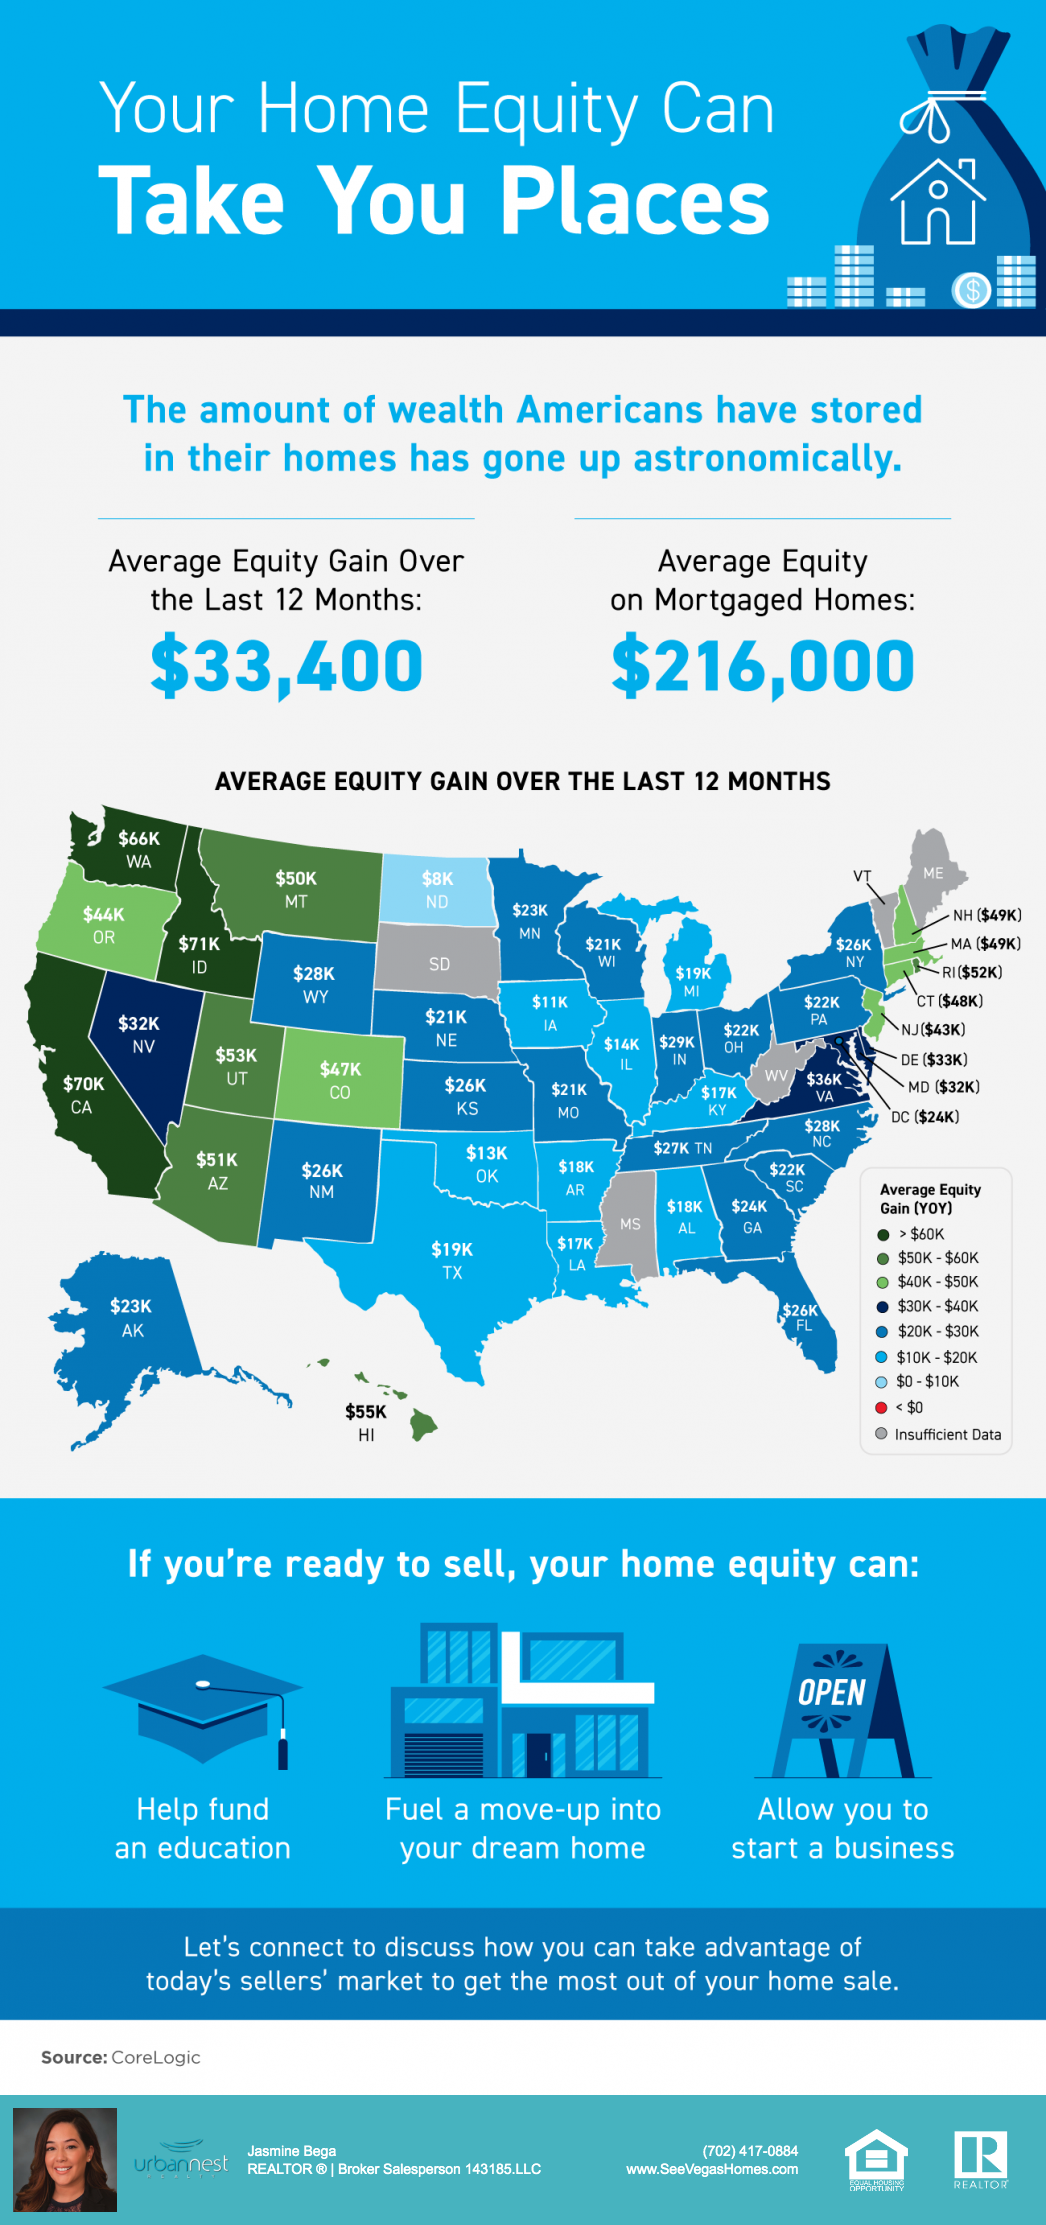 On average Nevada homeowners gained 32k in equity over the last 12 months SeeVegasHomes